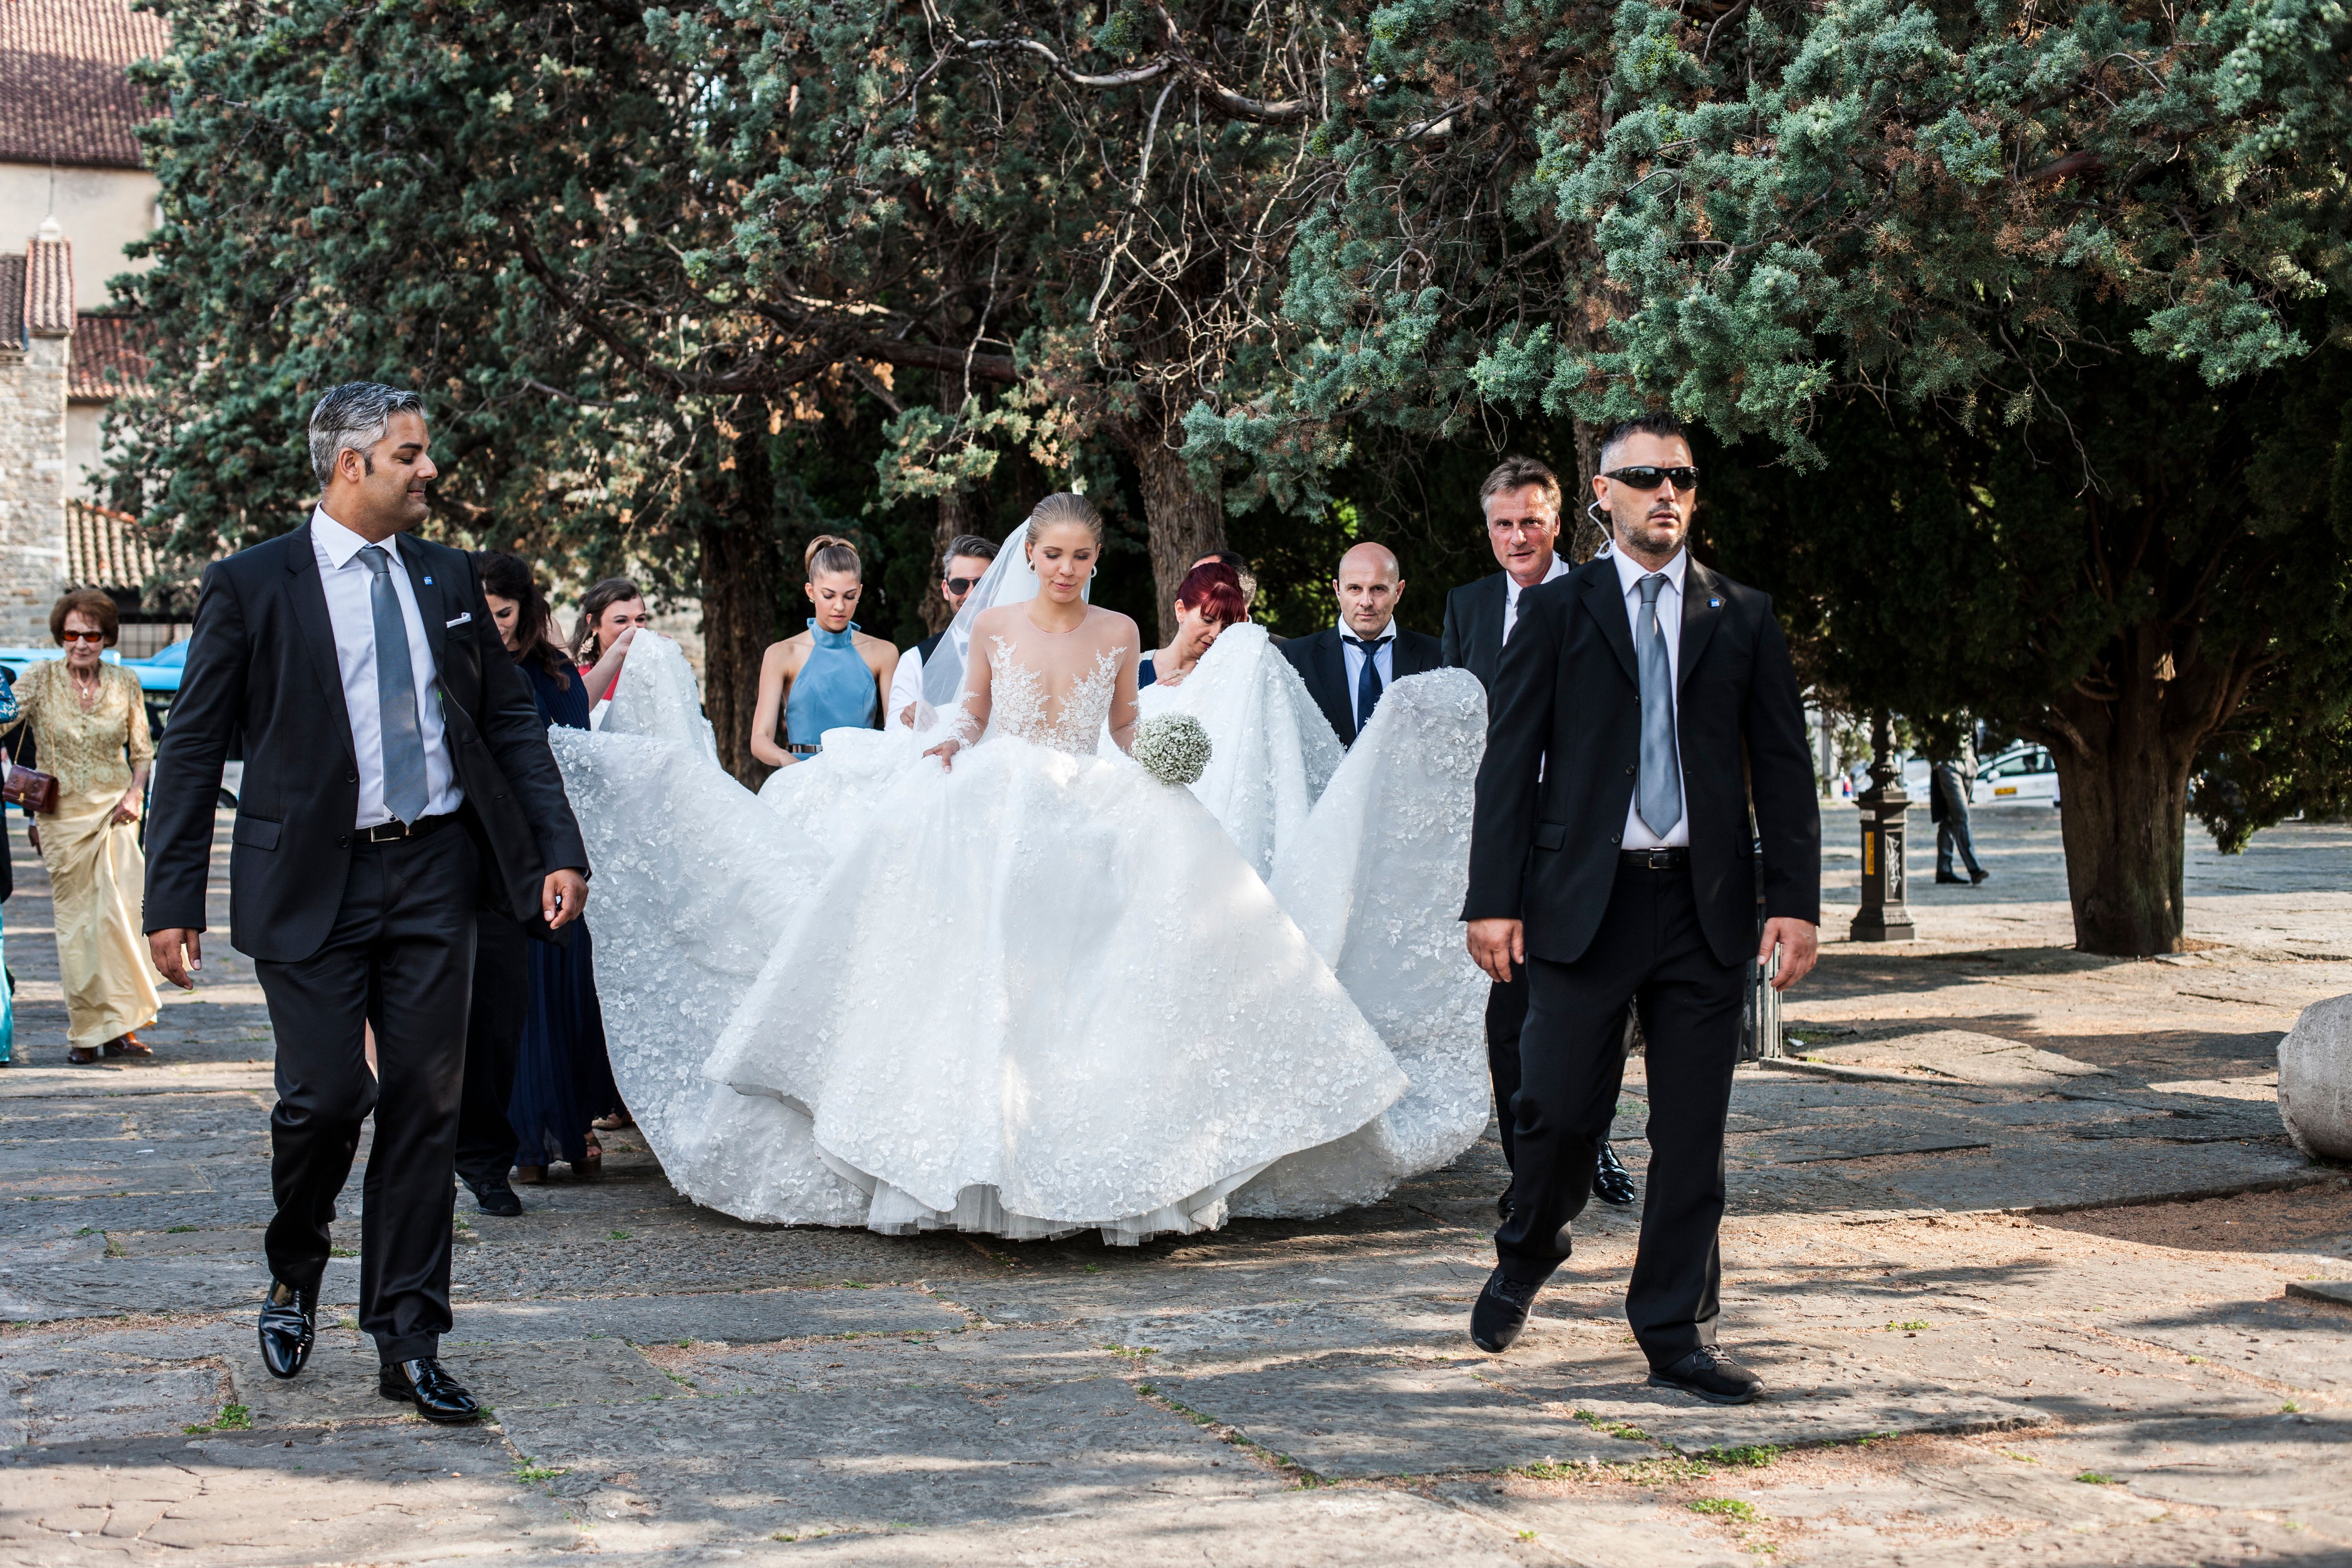 Victoria Swarovski's Wedding Dress Weighed 46kgs And Was Covered In 500,000